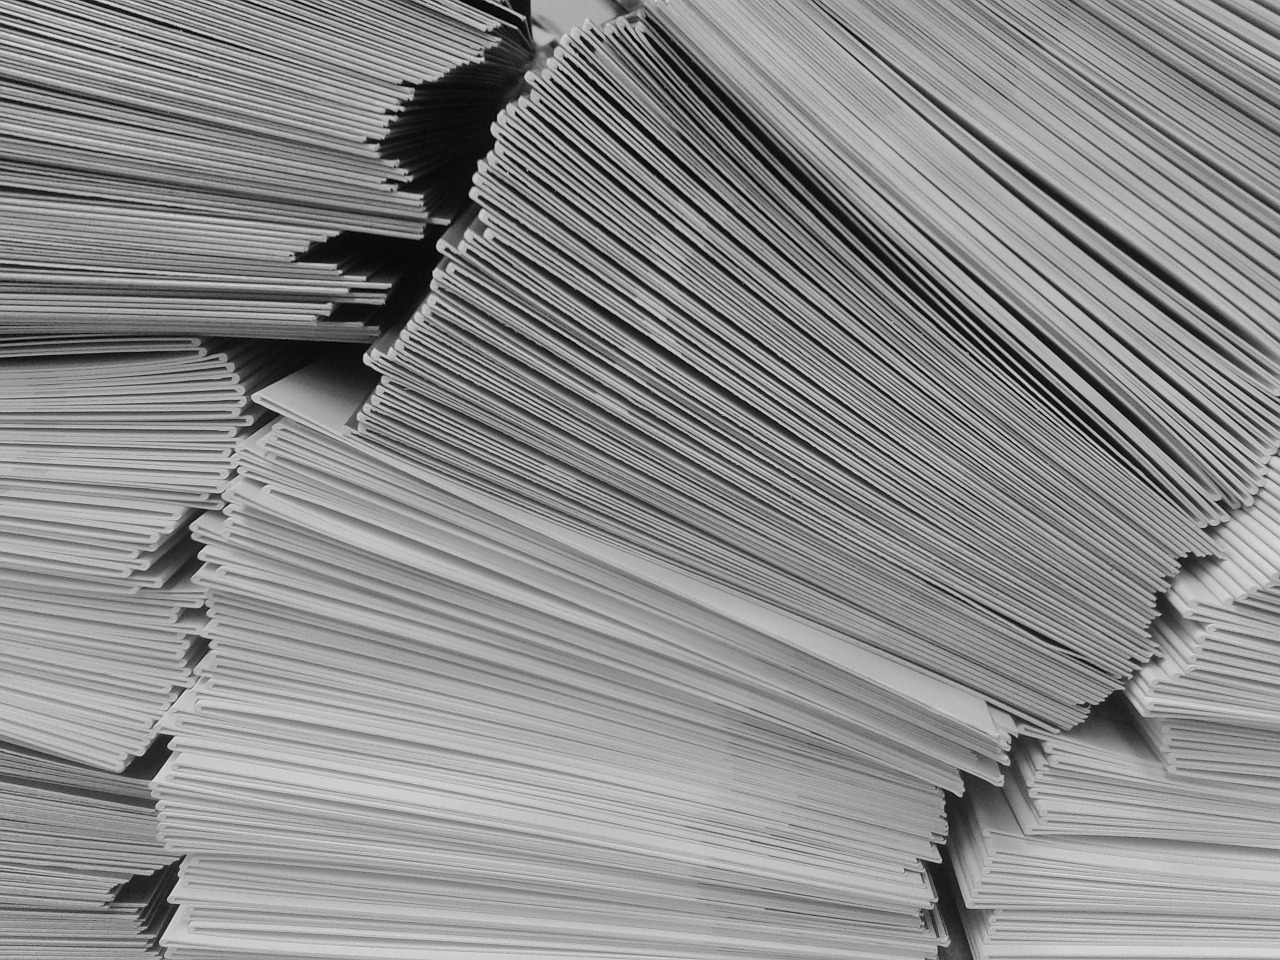 Paper Distributors Insurance to Aid Injured Workers